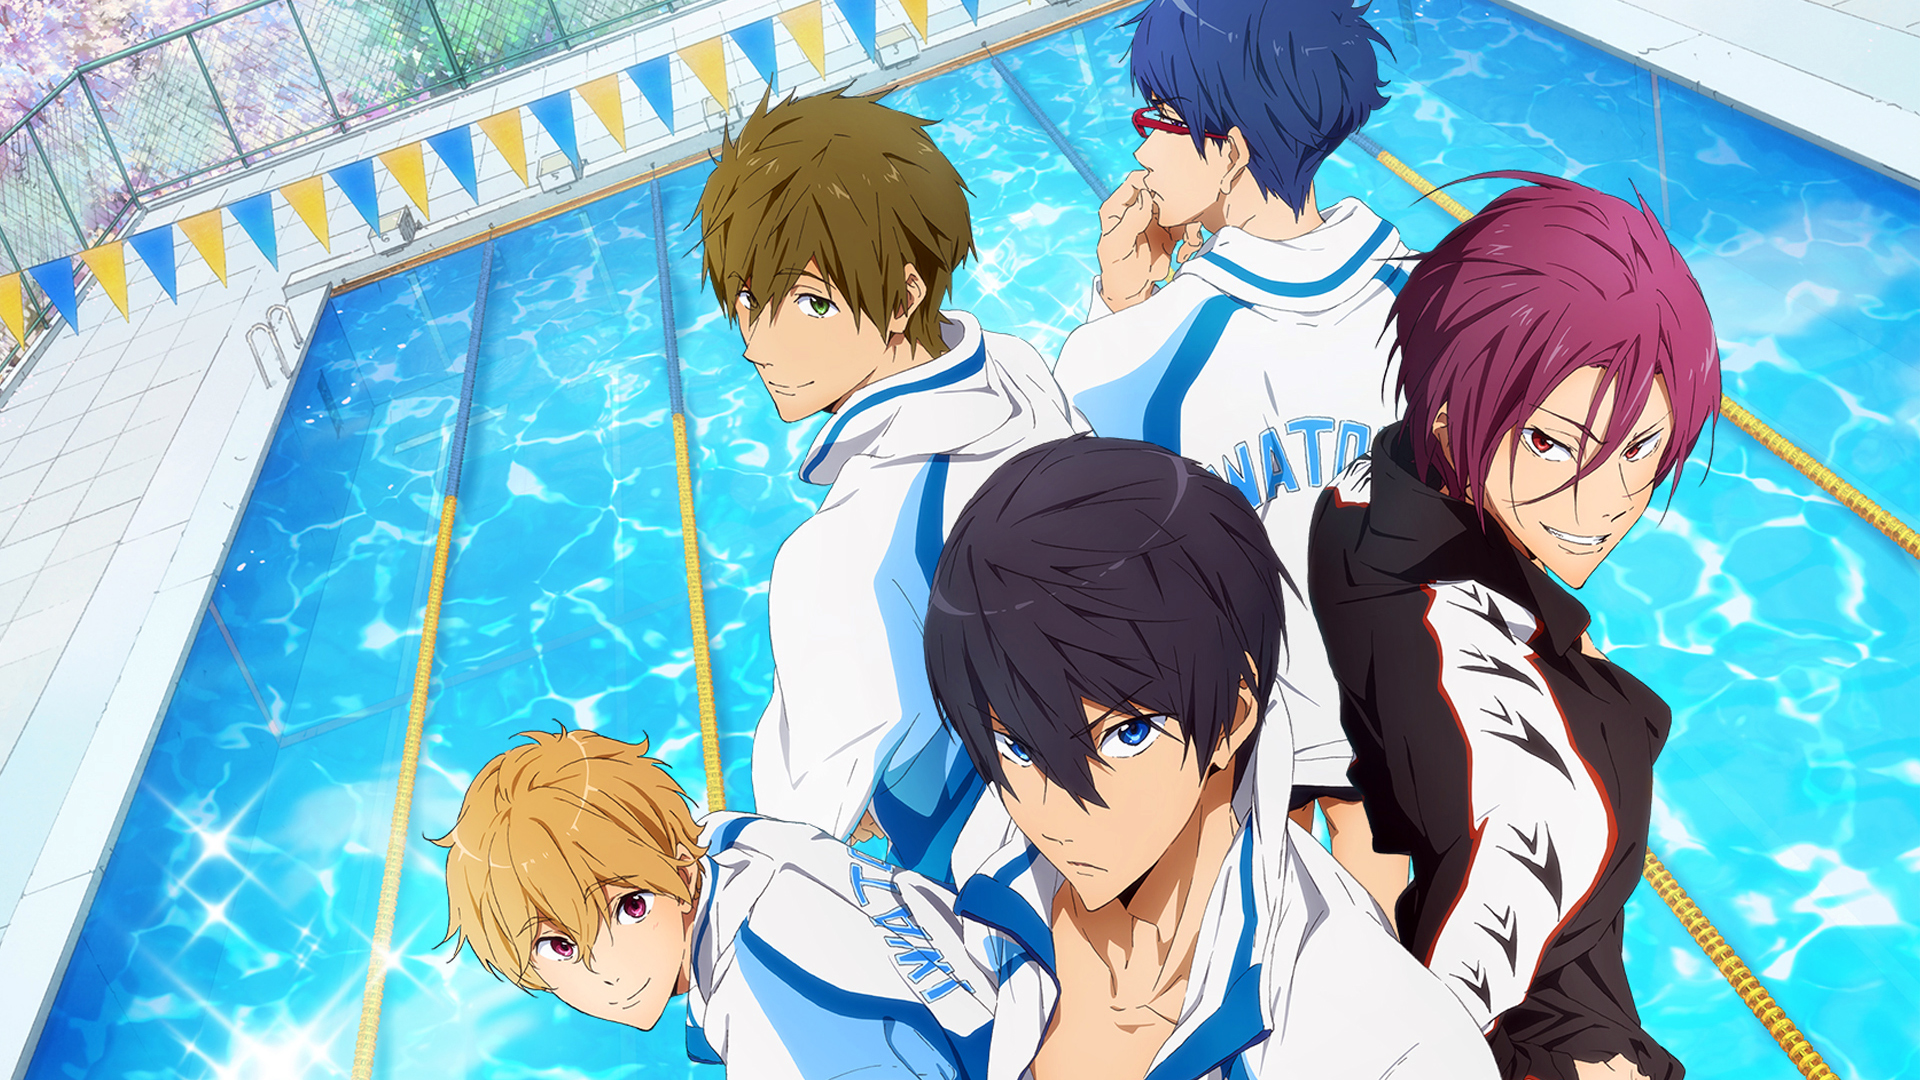 Anime boys swimming pool free!